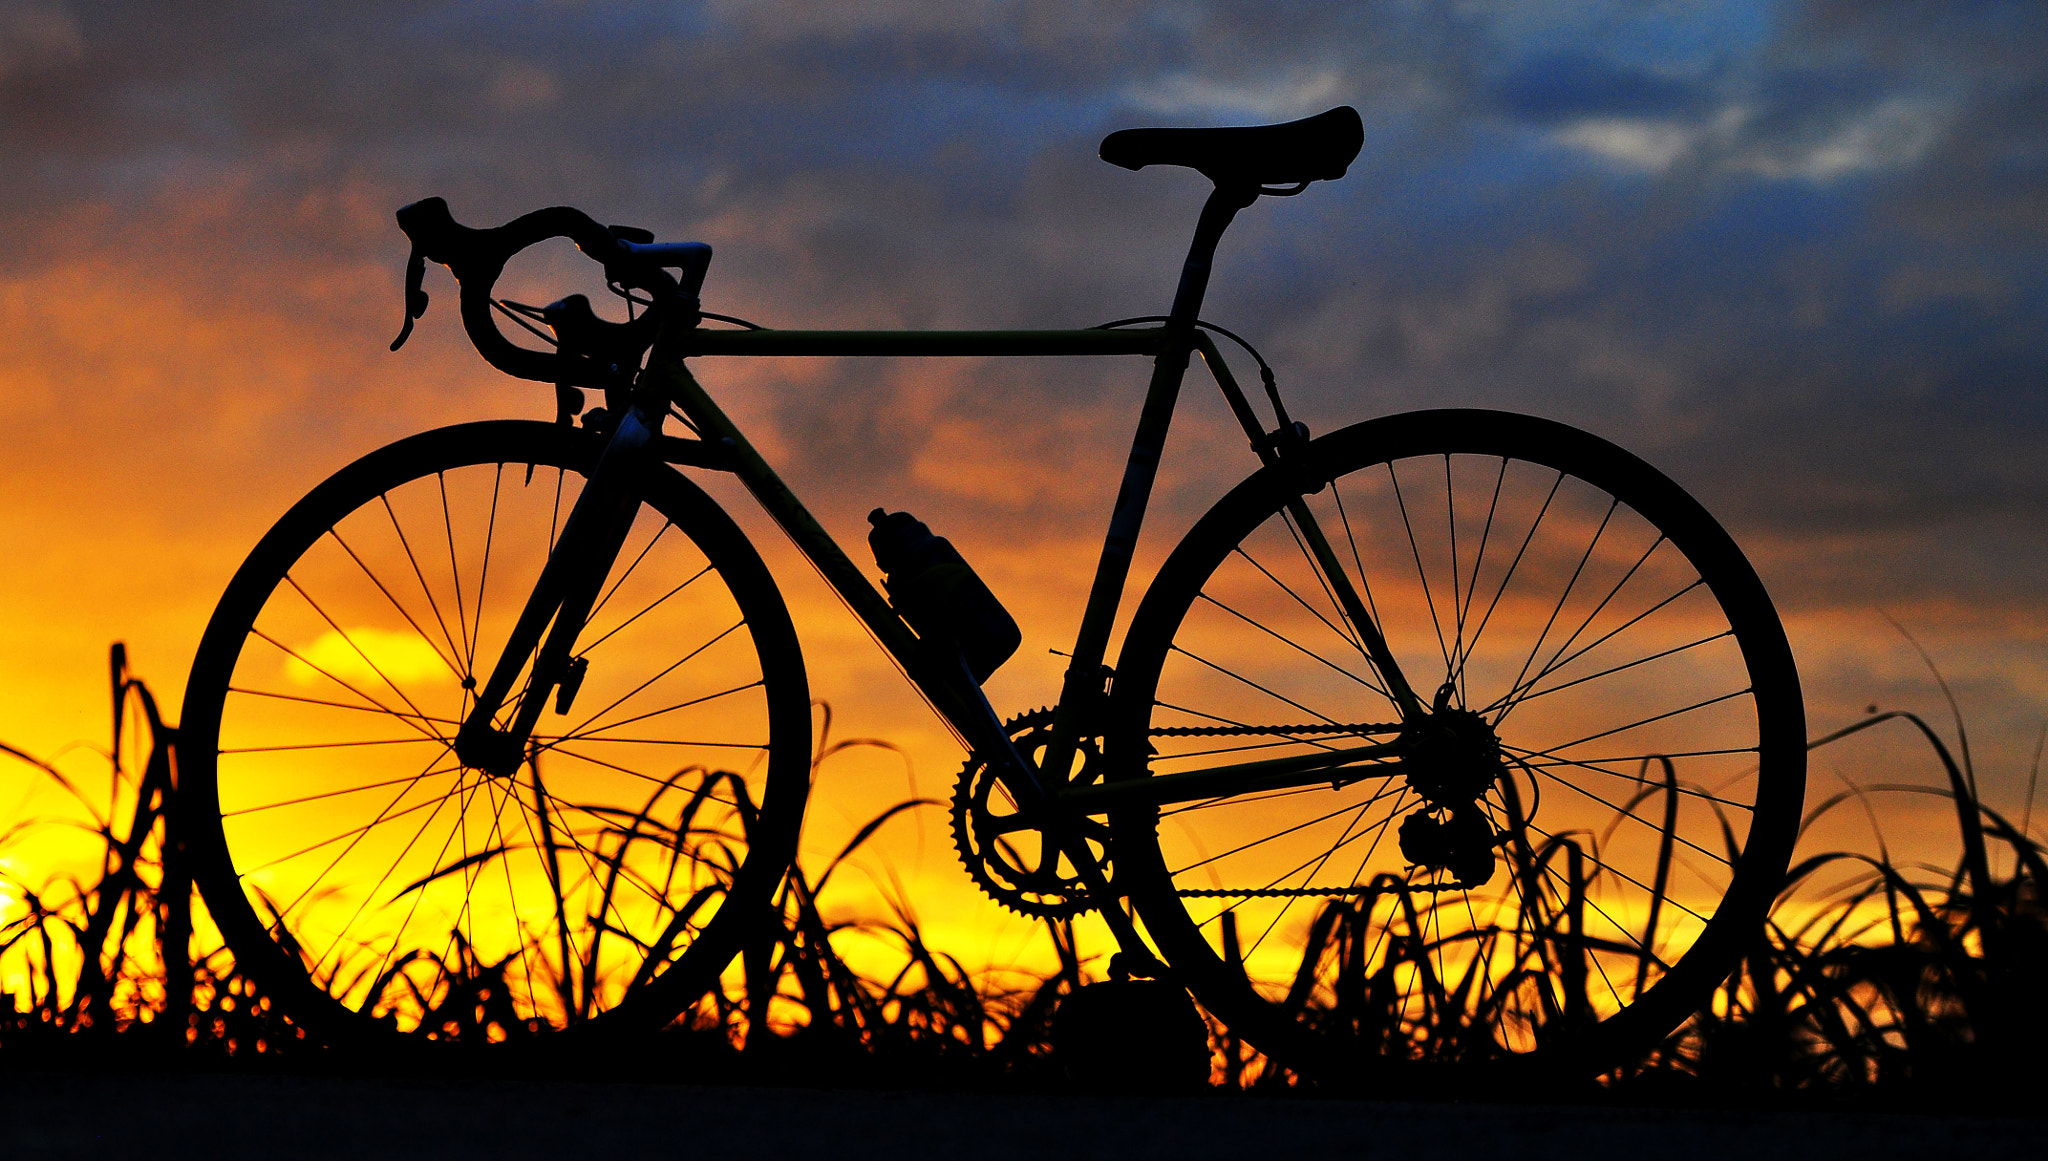 Photograph Bicycle by Miko Tolosa on 500px